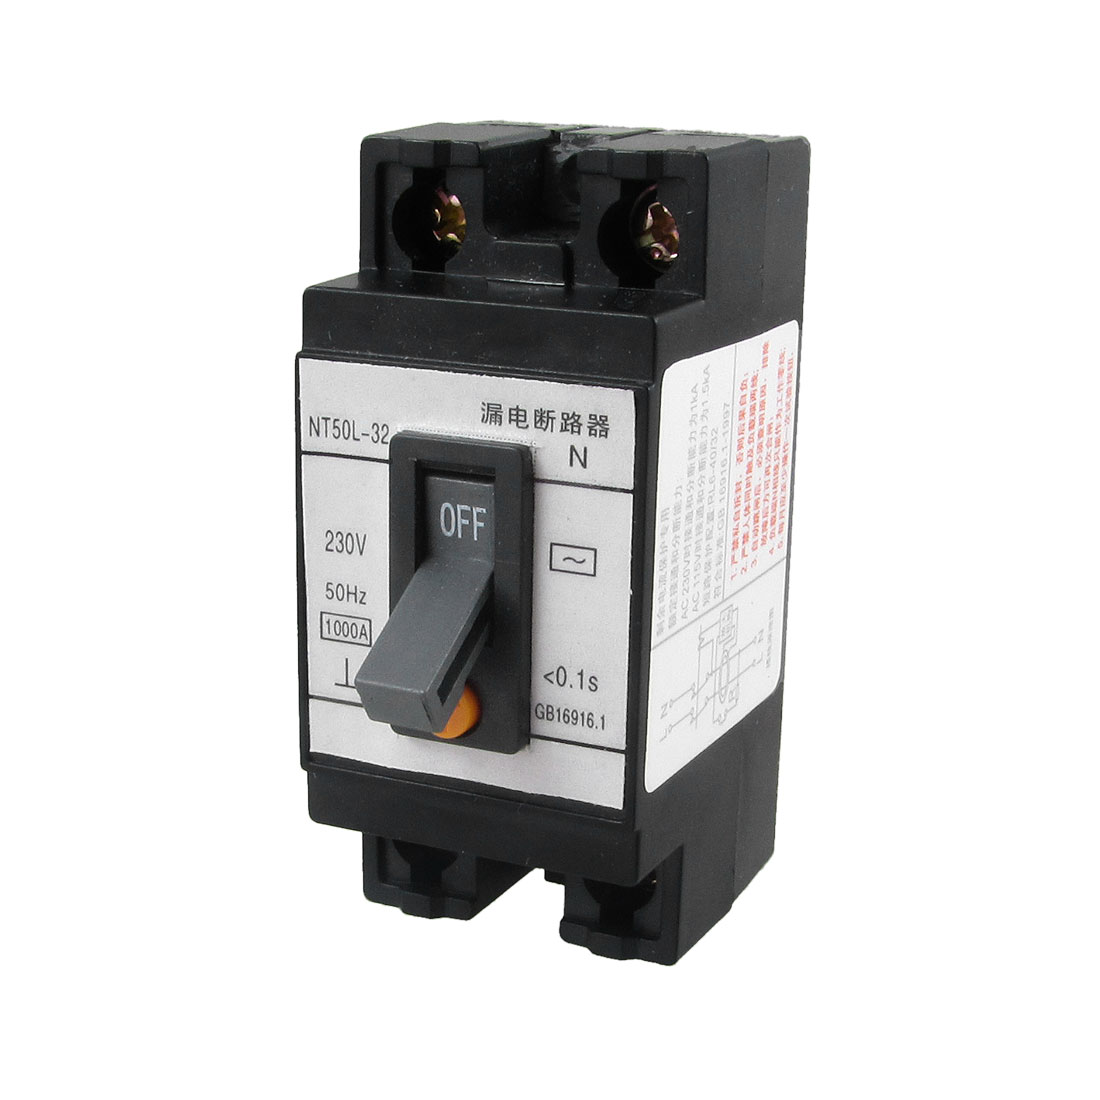 AC 230V 1000A Single Pole MCB Mini Circuit Breaker Black